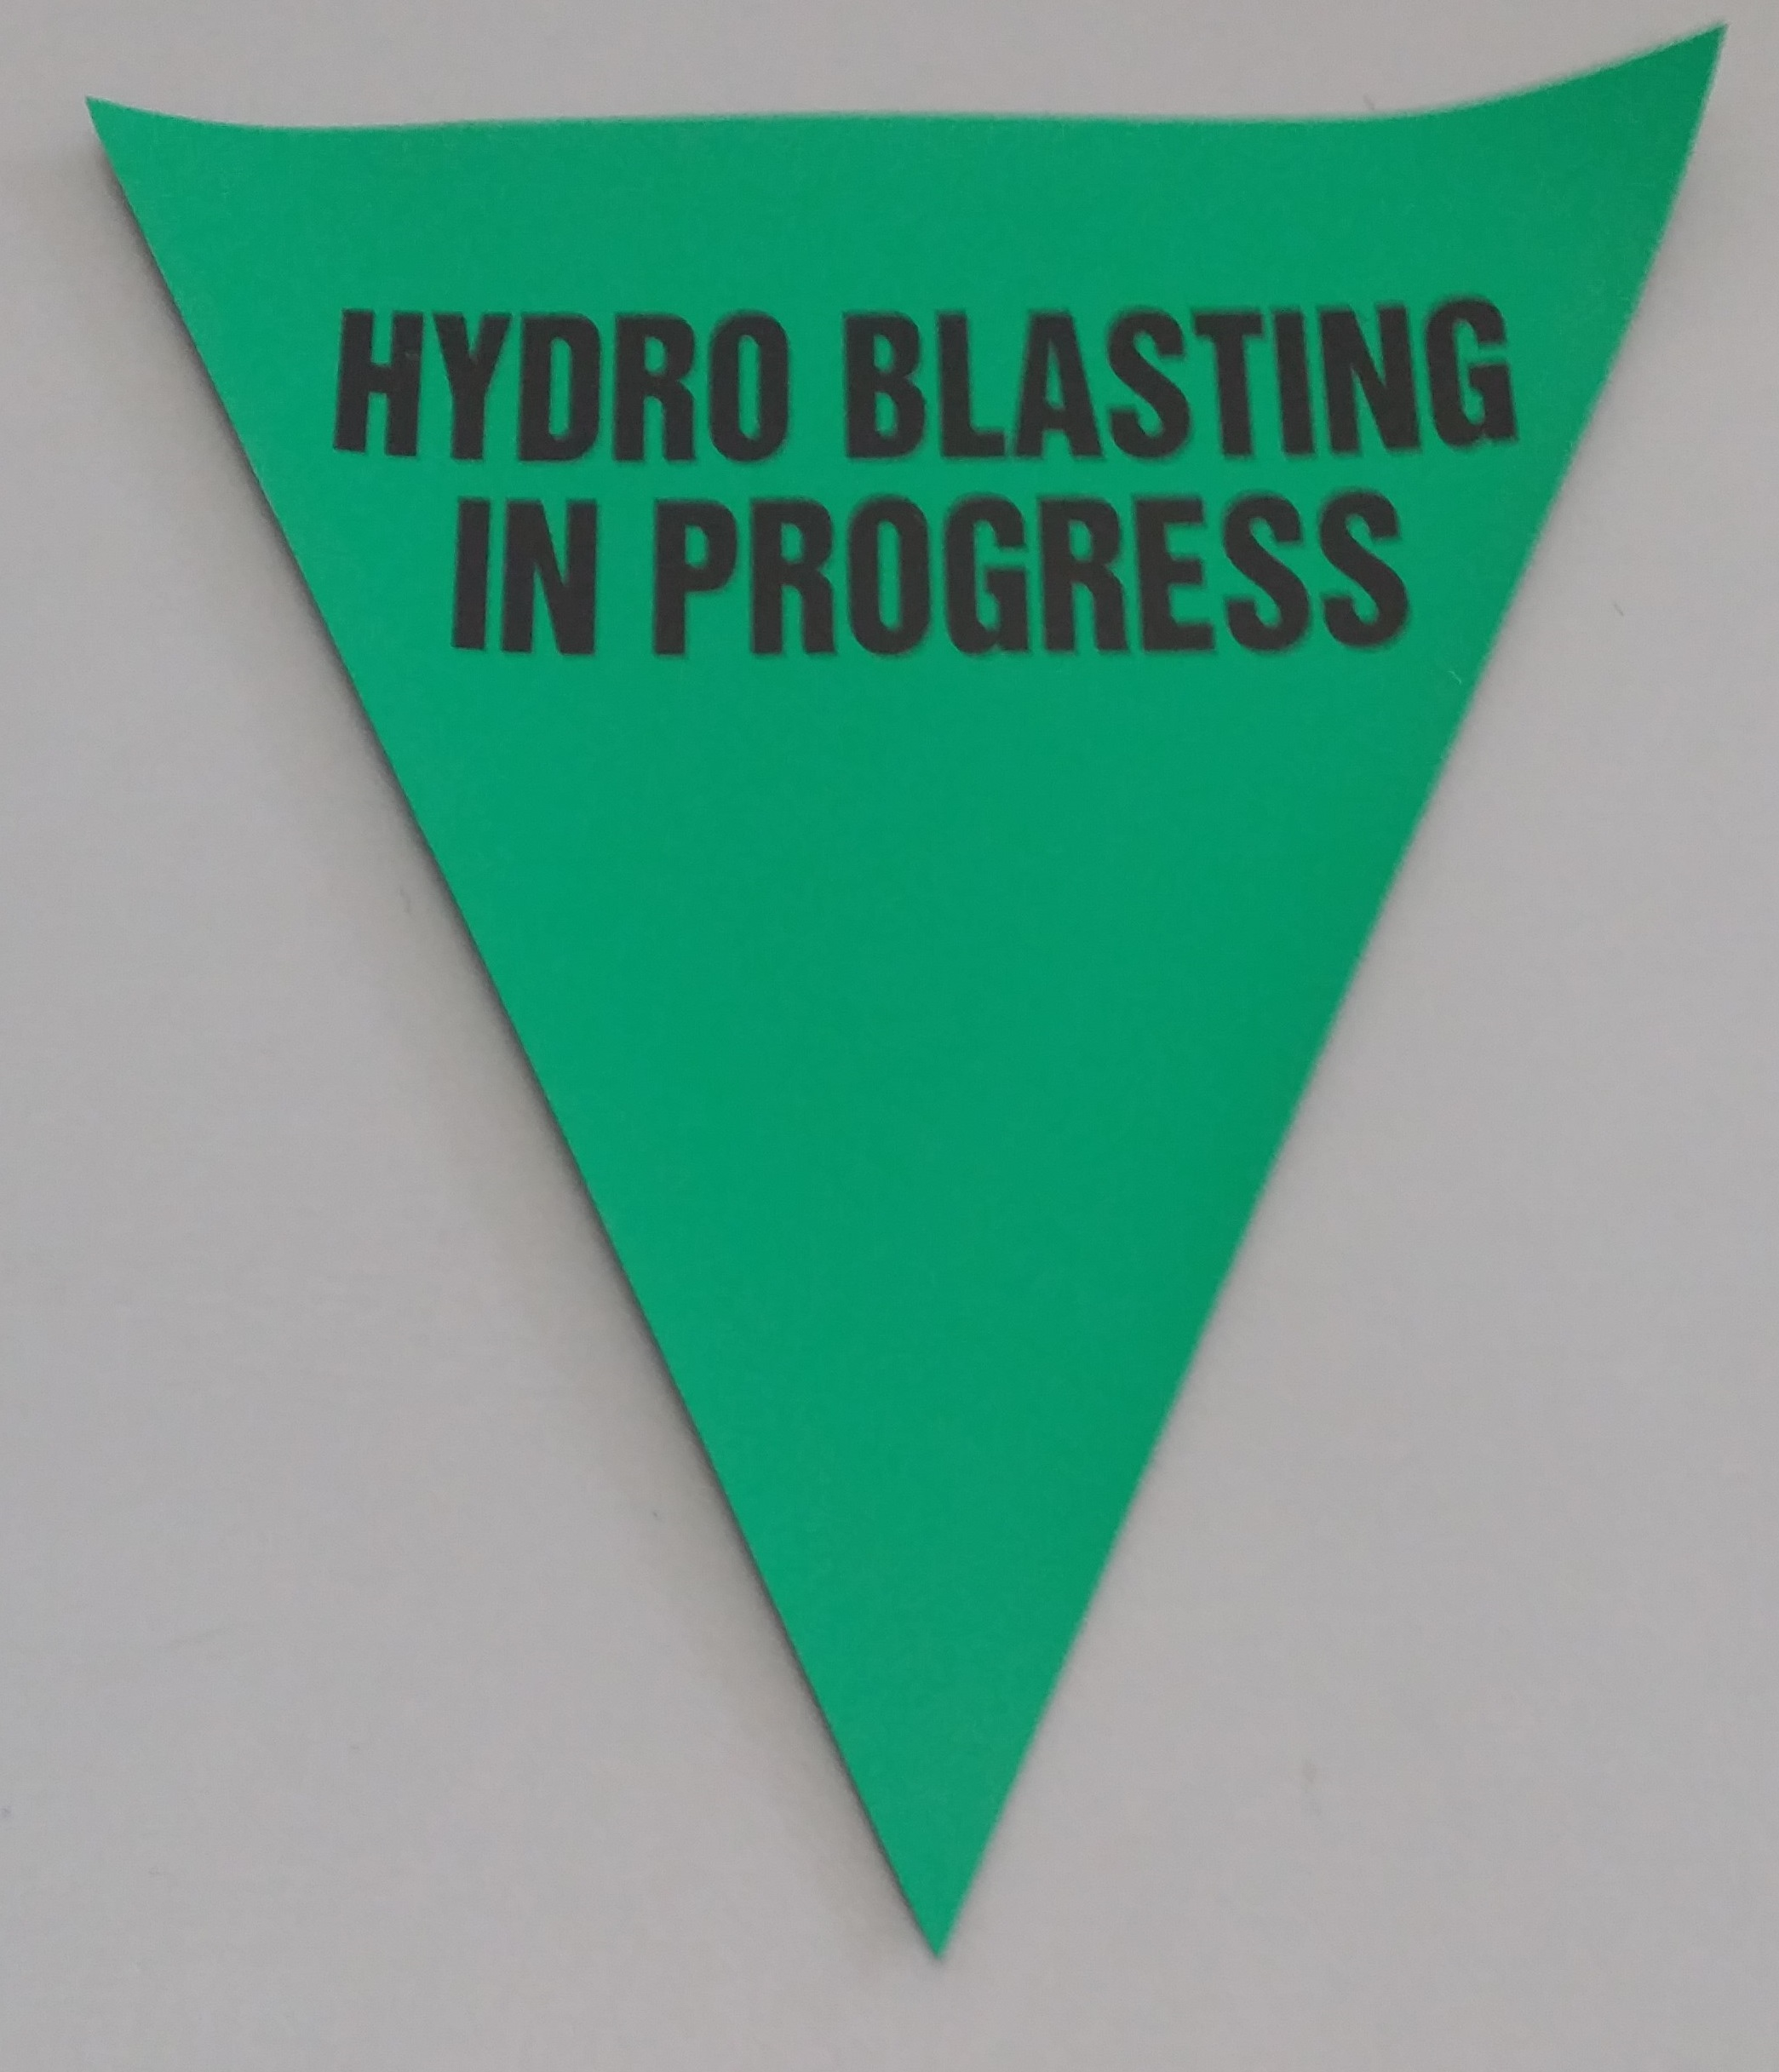 Hydro Blasting in Progress (green)